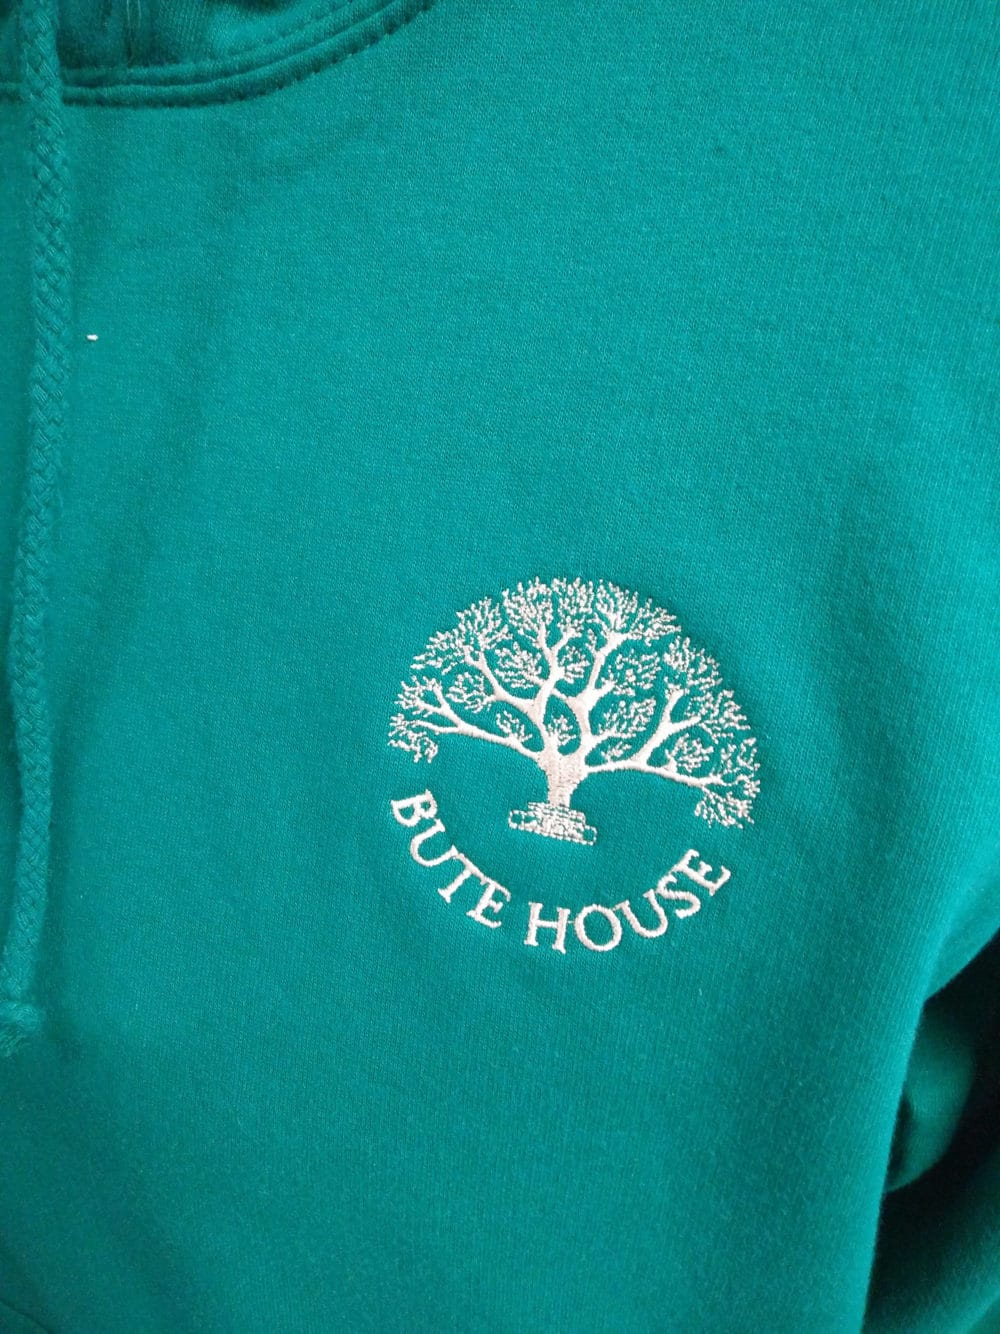 Bute House Aqua Leavers Hoodies 2018